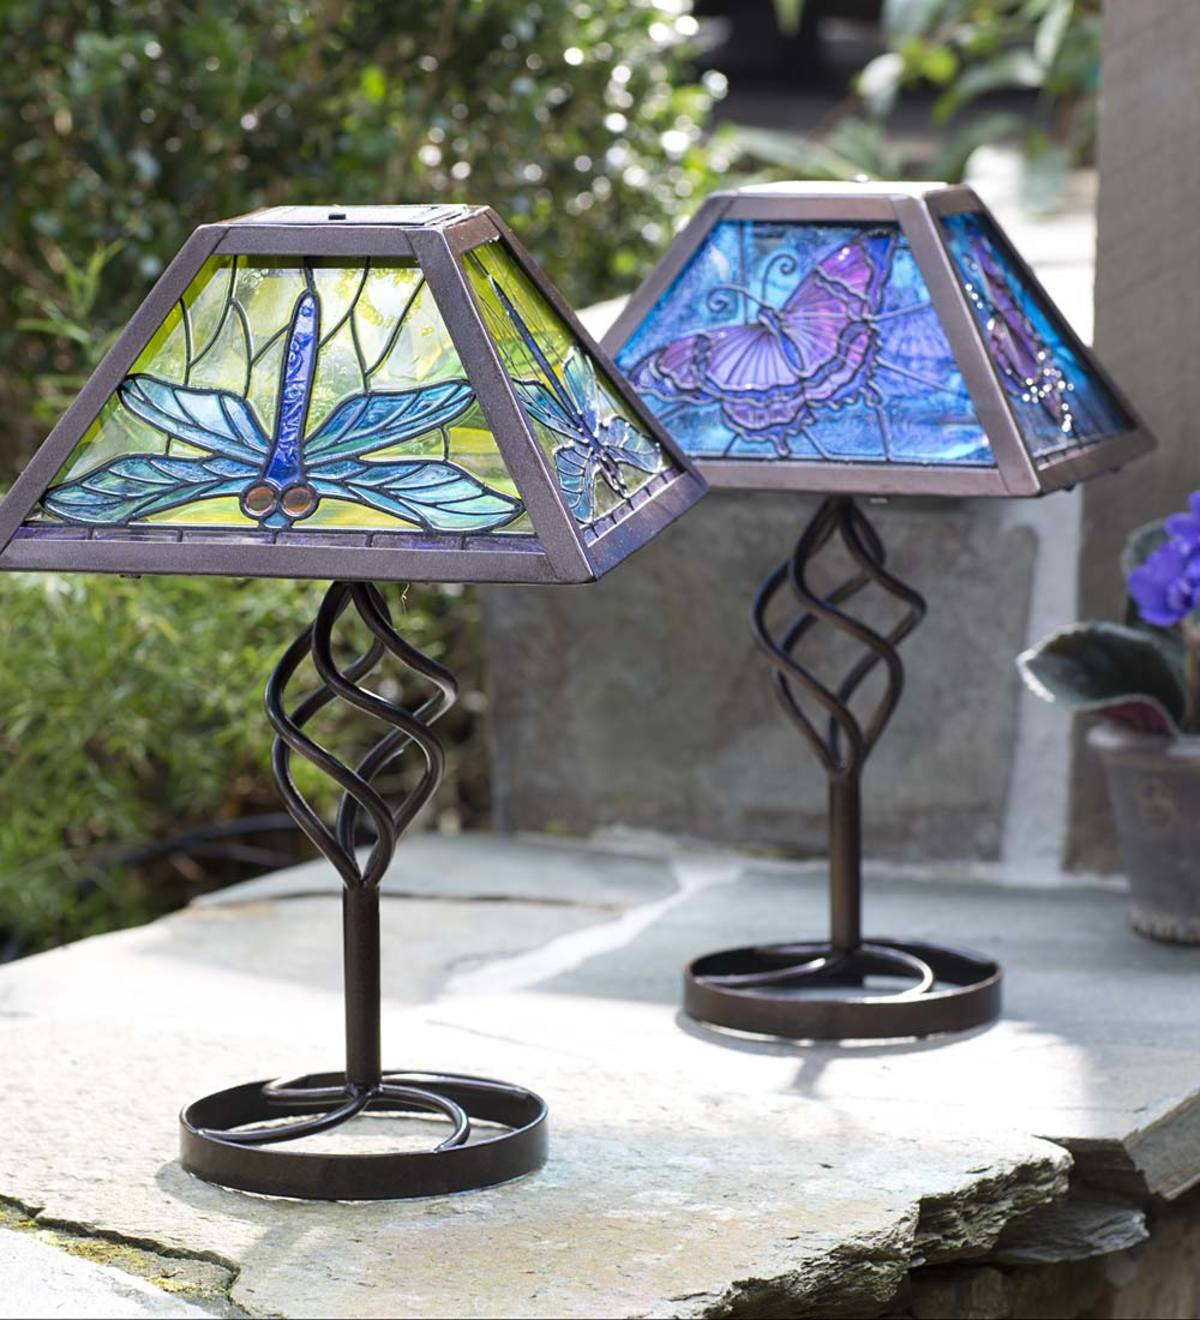 tiffany style stained glass solar outdoor table accent lamp wind small industrial coffee umbrella tall side with drawers oval garden furniture covers chairs edmonton west elm